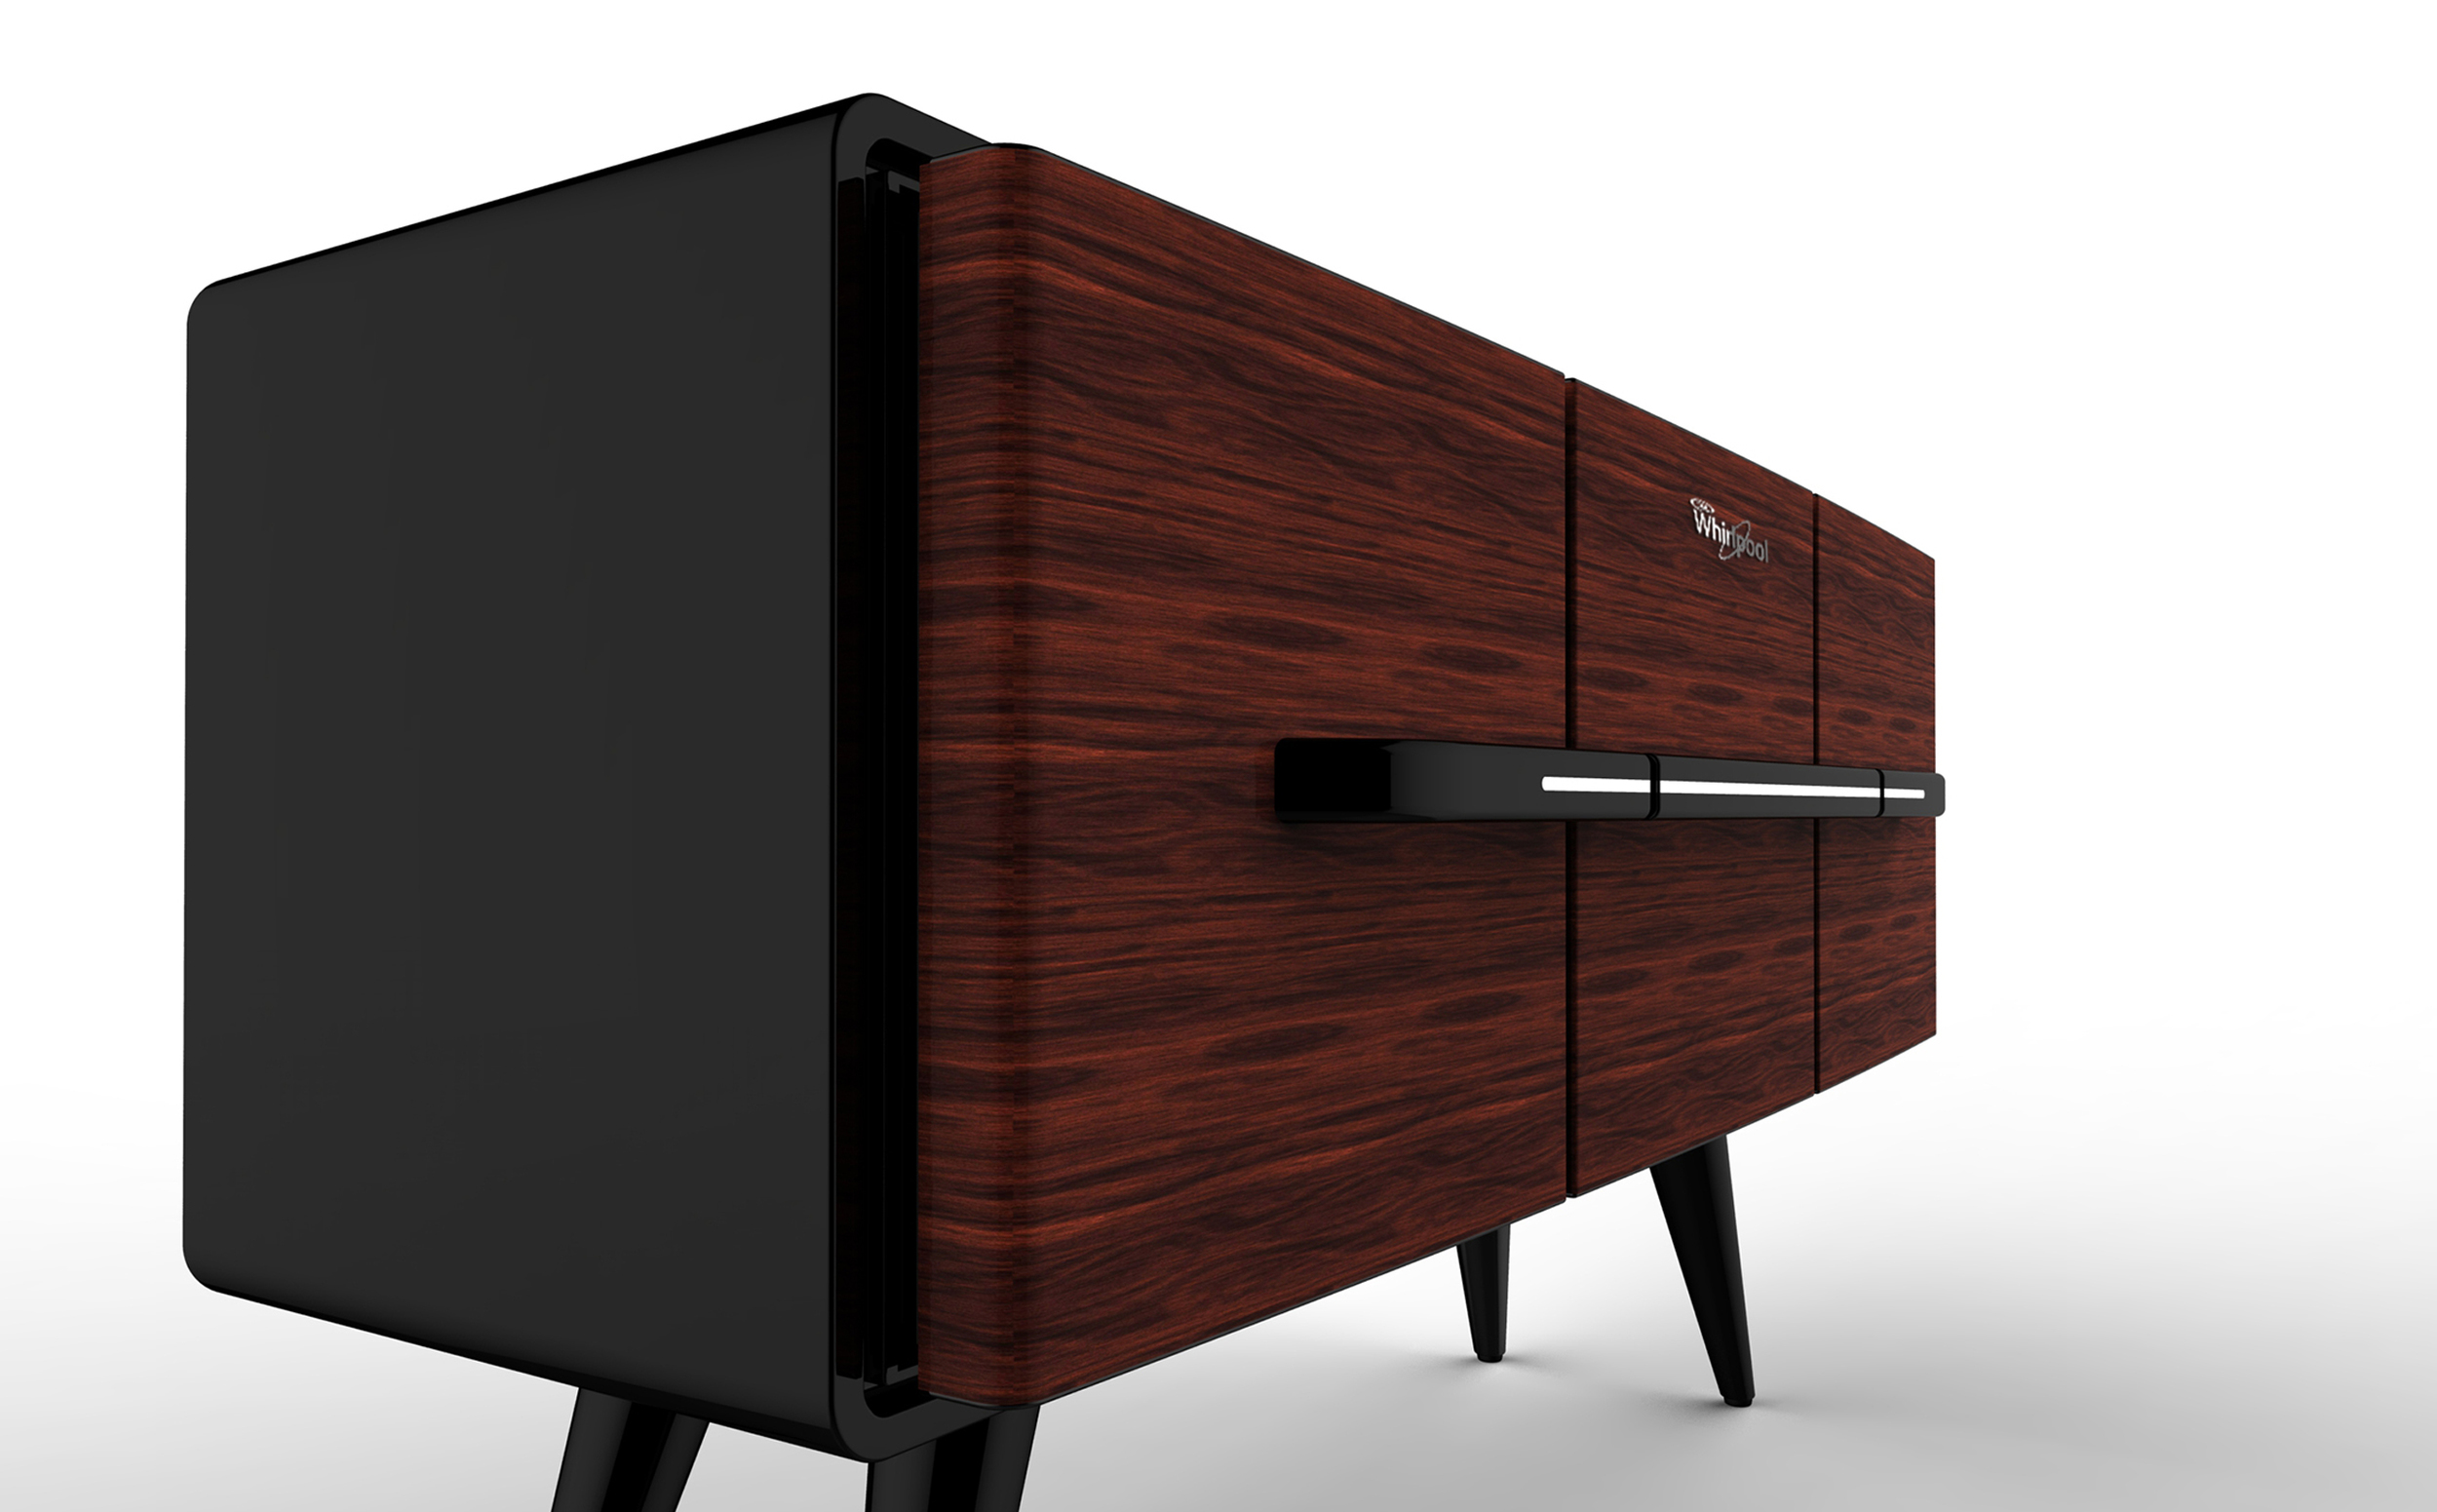 Credenza : The Furniture Refrigerator - How might we bring back the brand of Whirlpool into the living space while not be obtrusive to its environment?